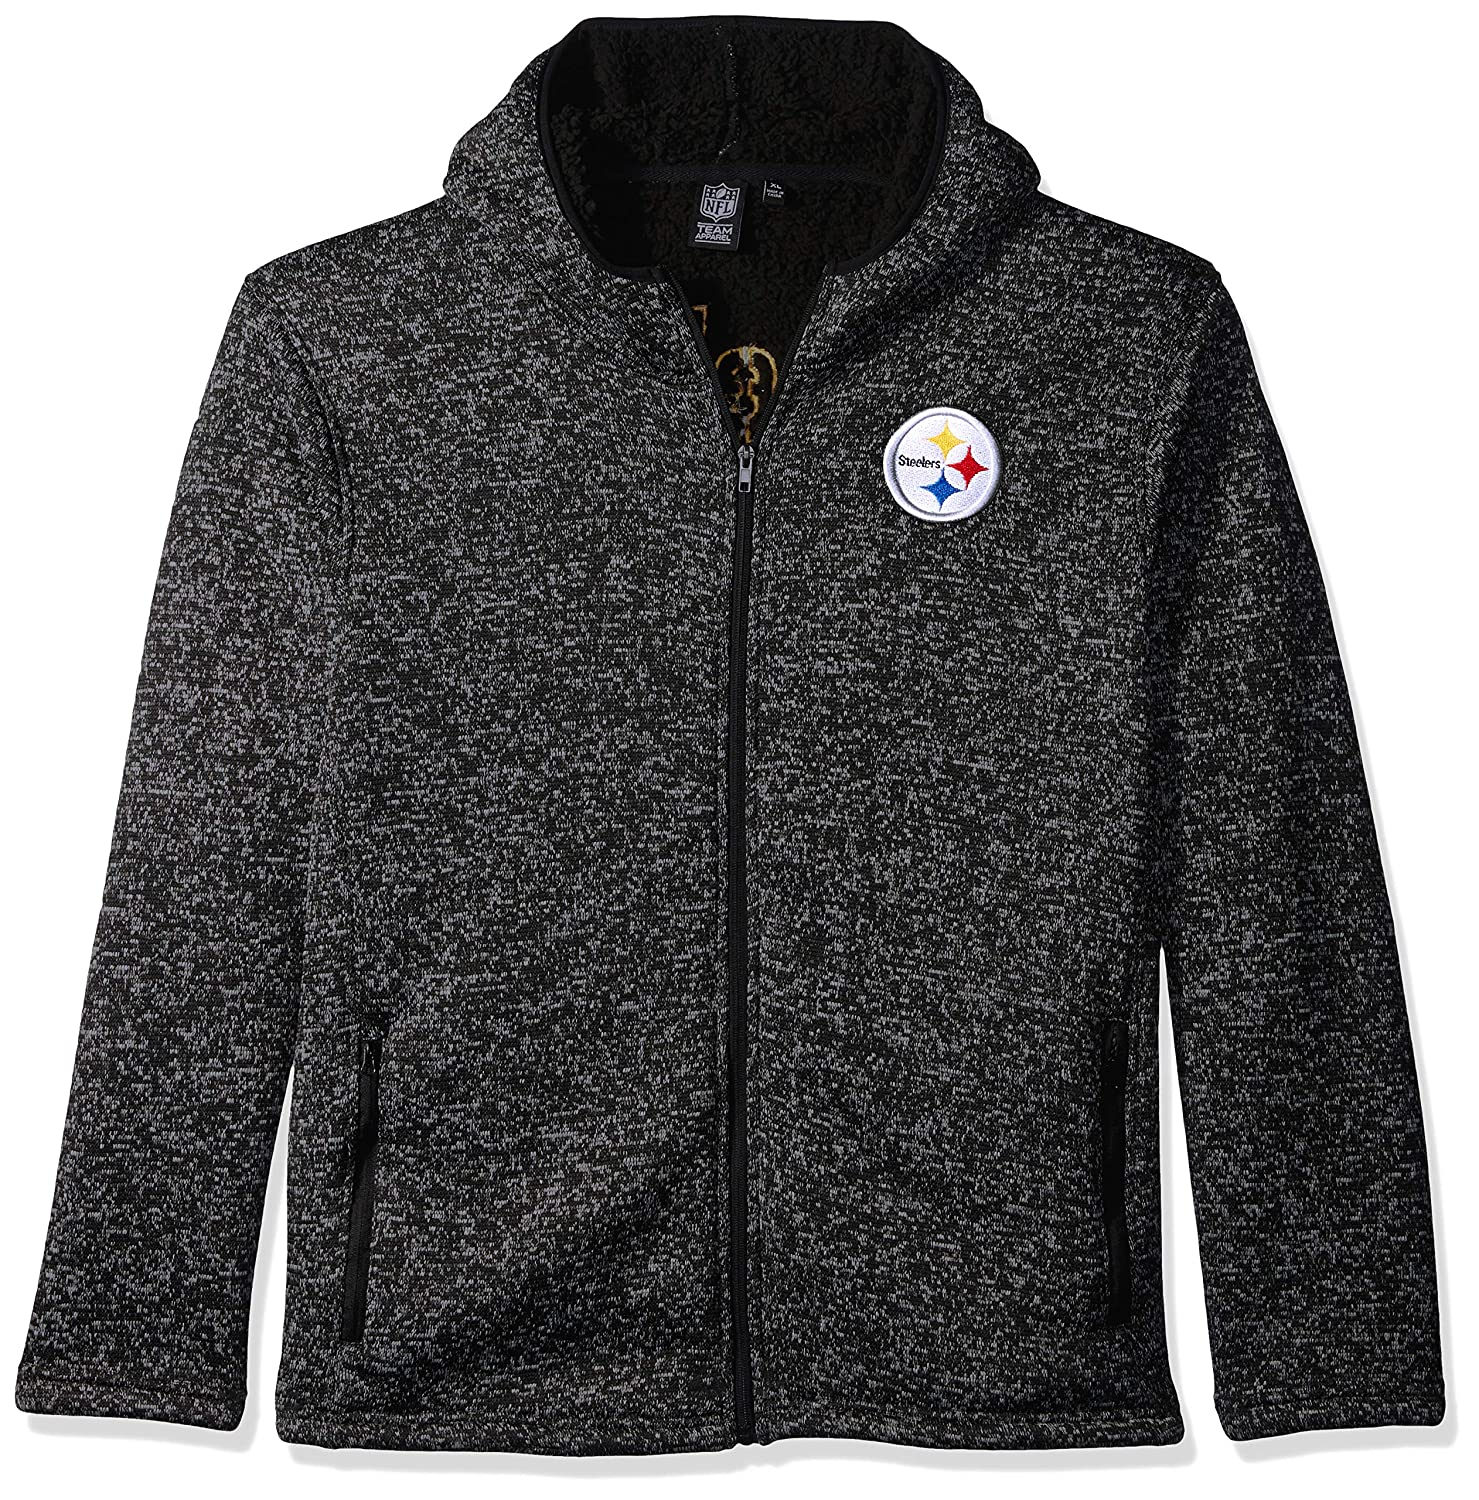 3a75a868 Buy Icer Brands NFL Pittsburgh Steelers Men's Sherpa Full Zip Cozy Fleece  Hoodie Sweatshirt, X-Large, Black Online at Low Prices in India - Amazon.in